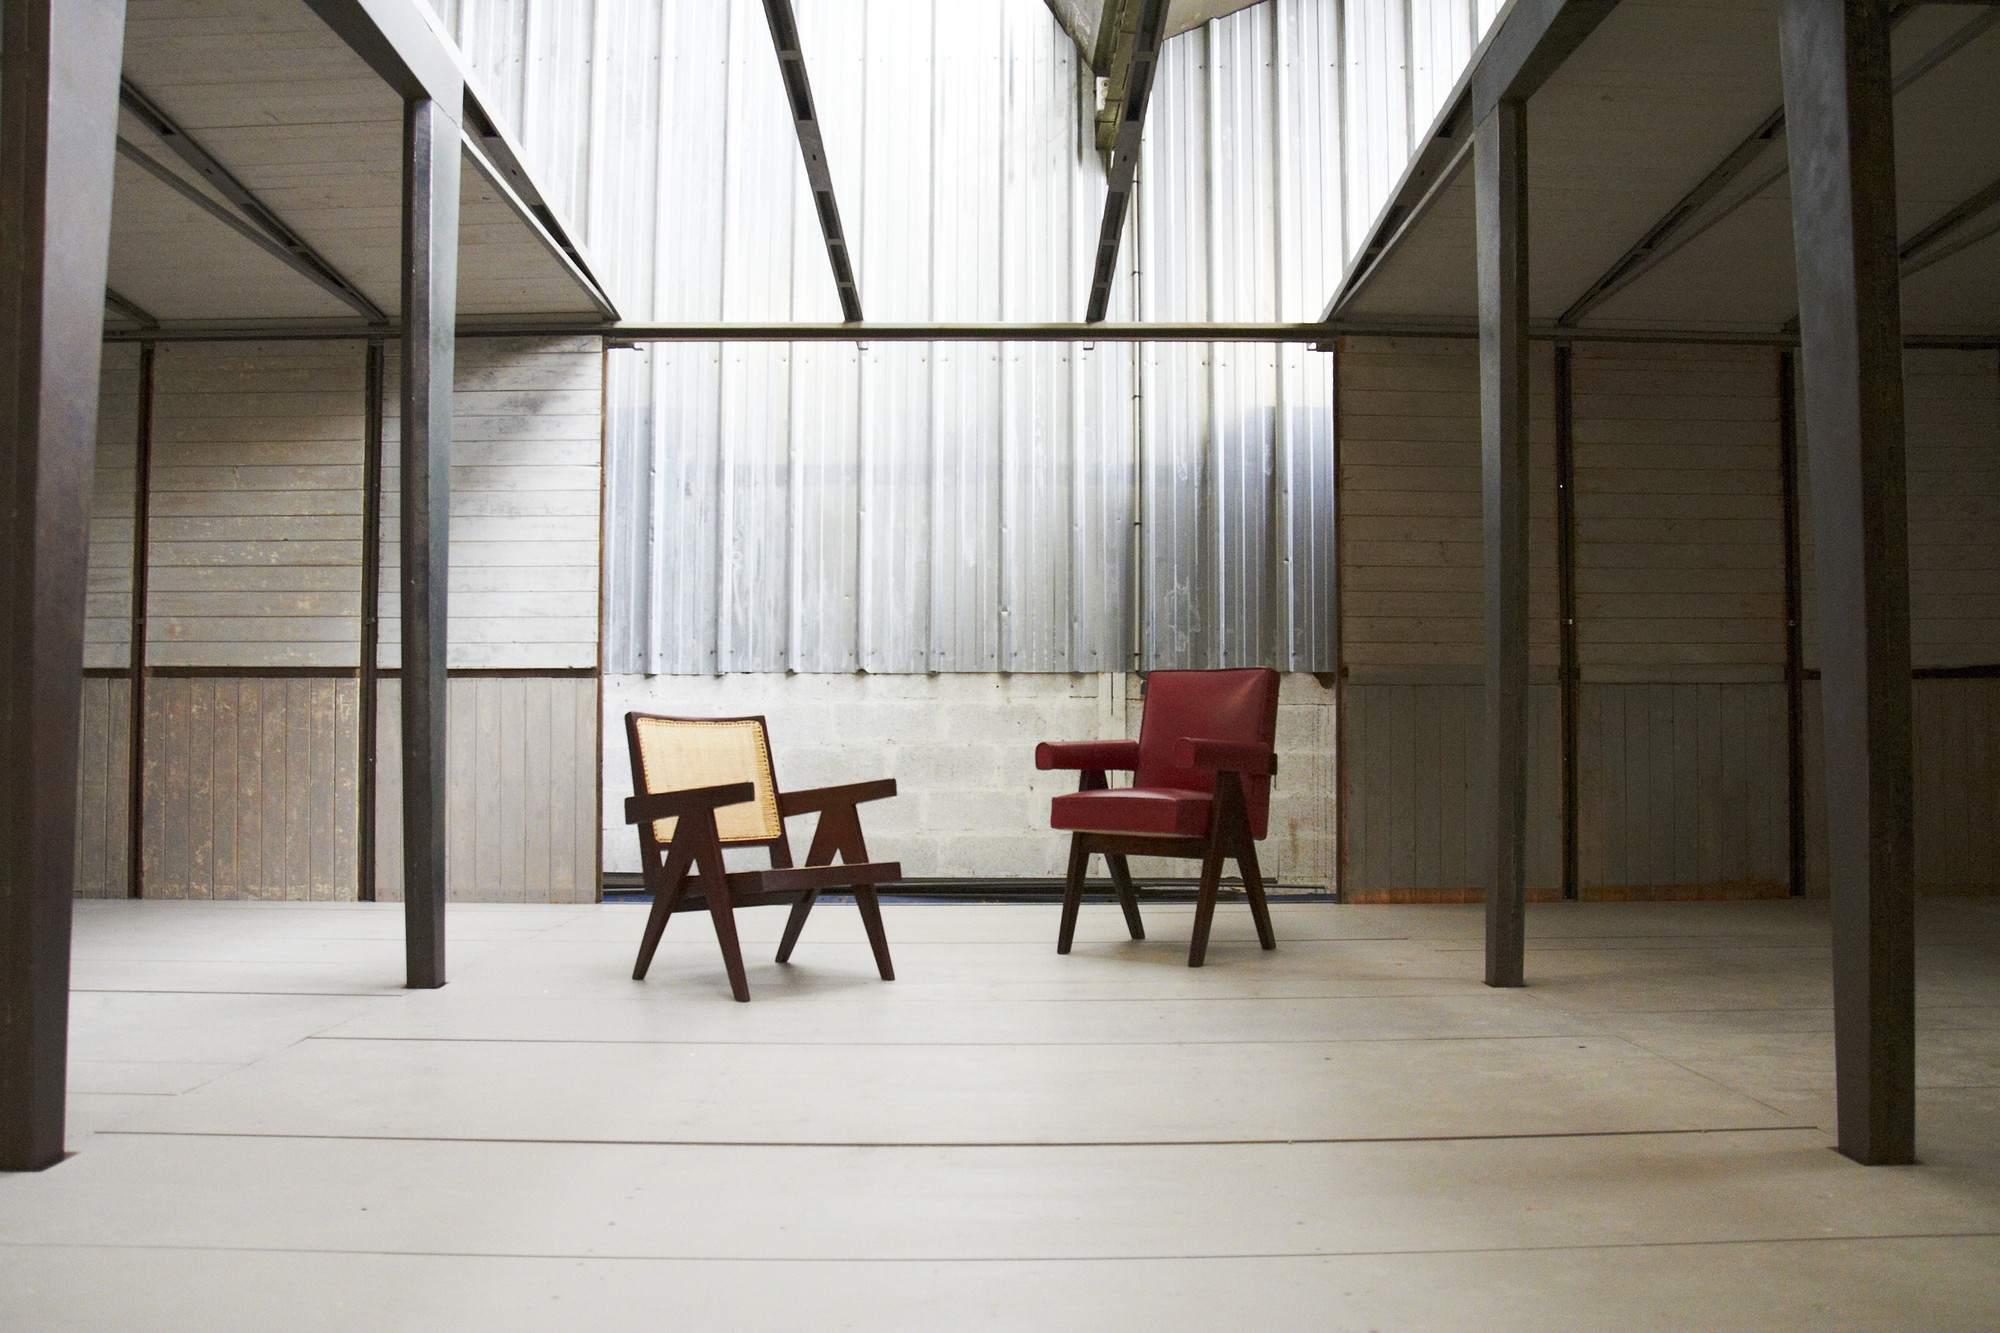 1._Prouve_House_with_Easy_Armchair_Chair_and_Committee_Chair_by_Jeanneret.jpg